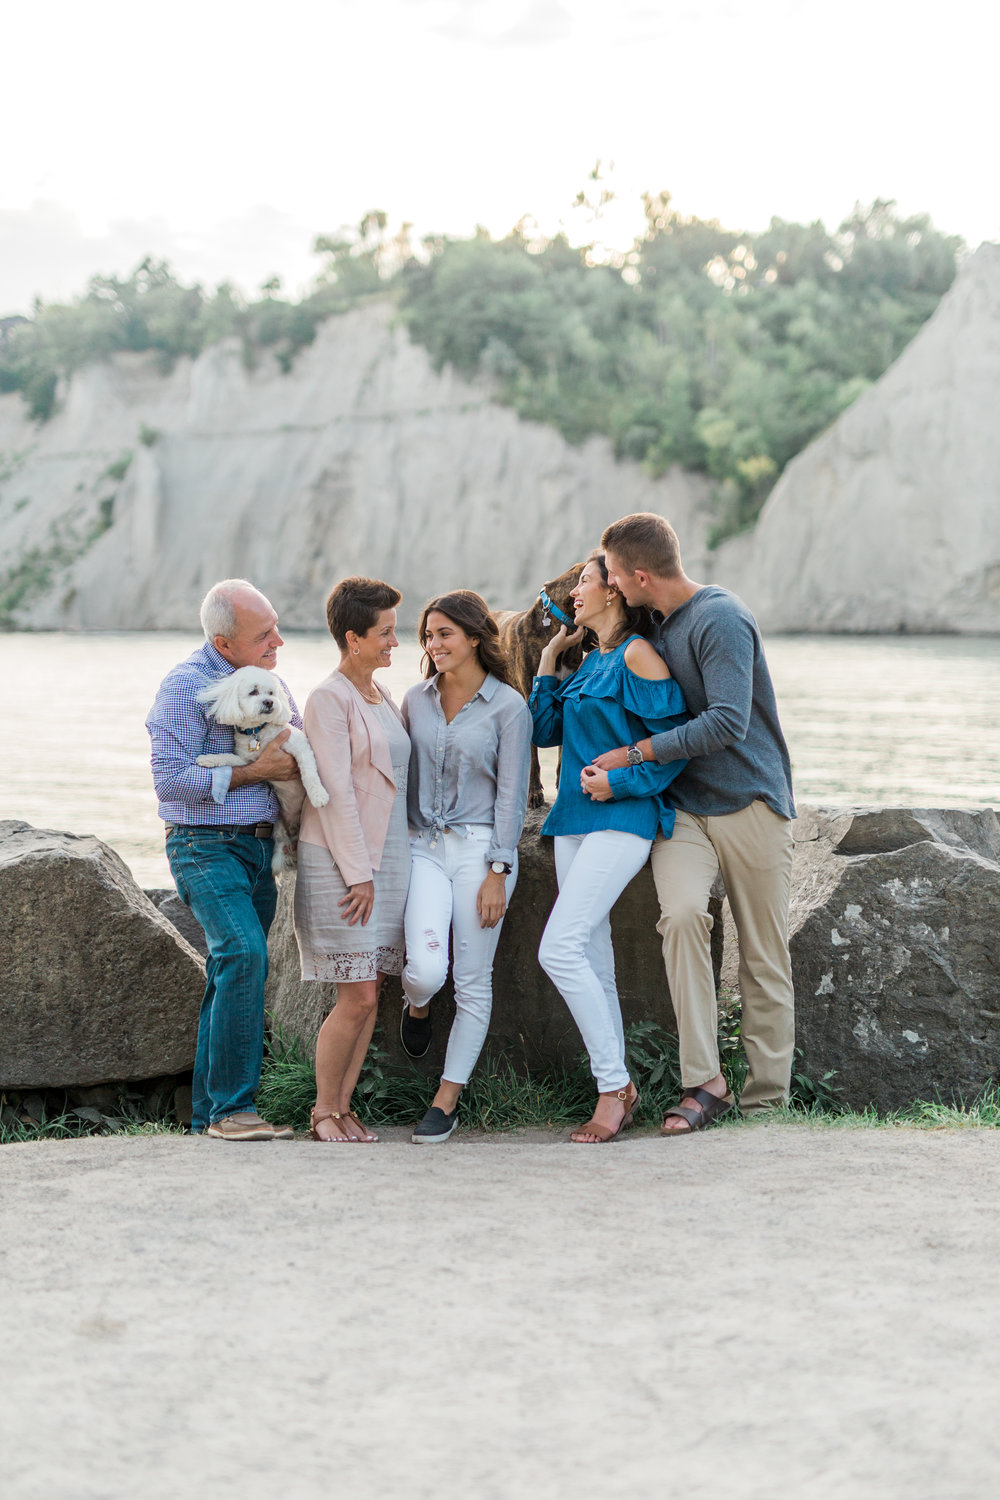 Danielle-Giroux-Amir-Golbazi-Genua-Family-Photography-Scarborough-Bluffs-9356.jpg